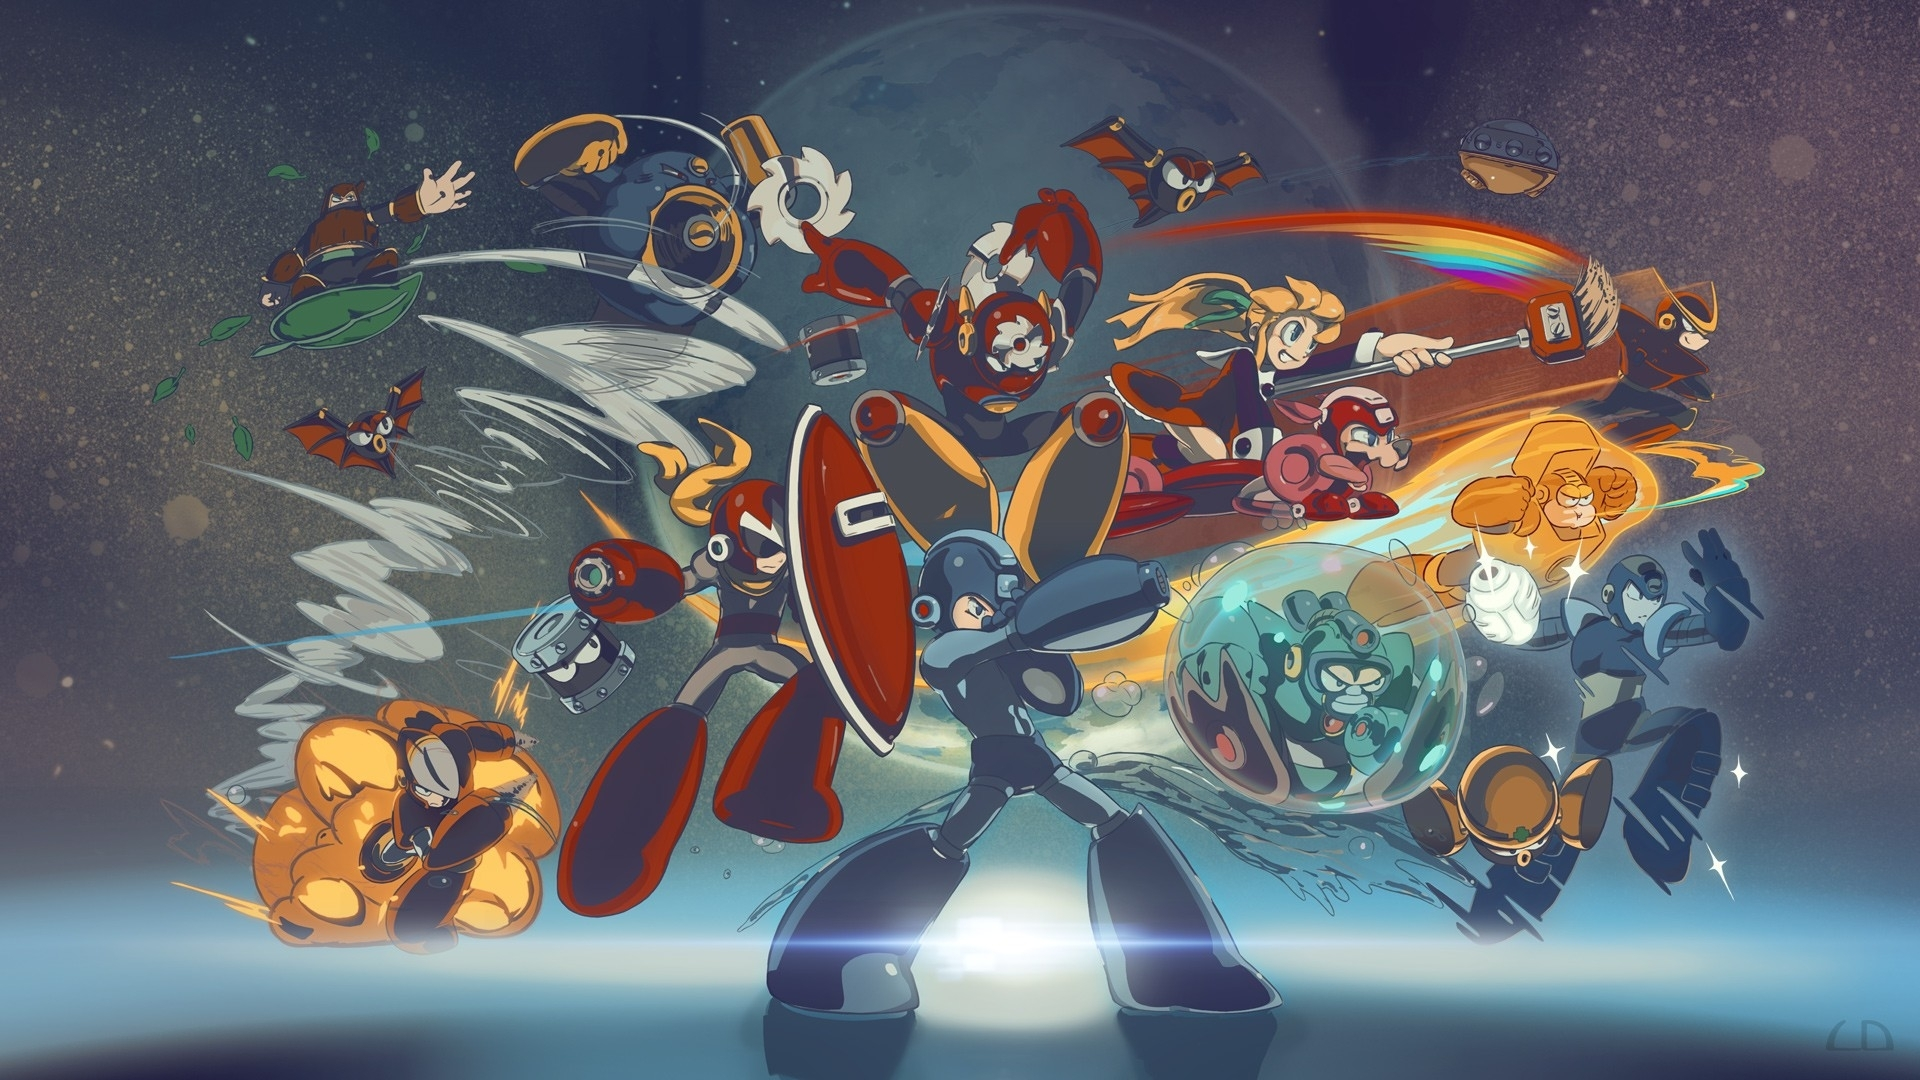 megaman-wallpaper-hd-free-download – wallpaper.wiki